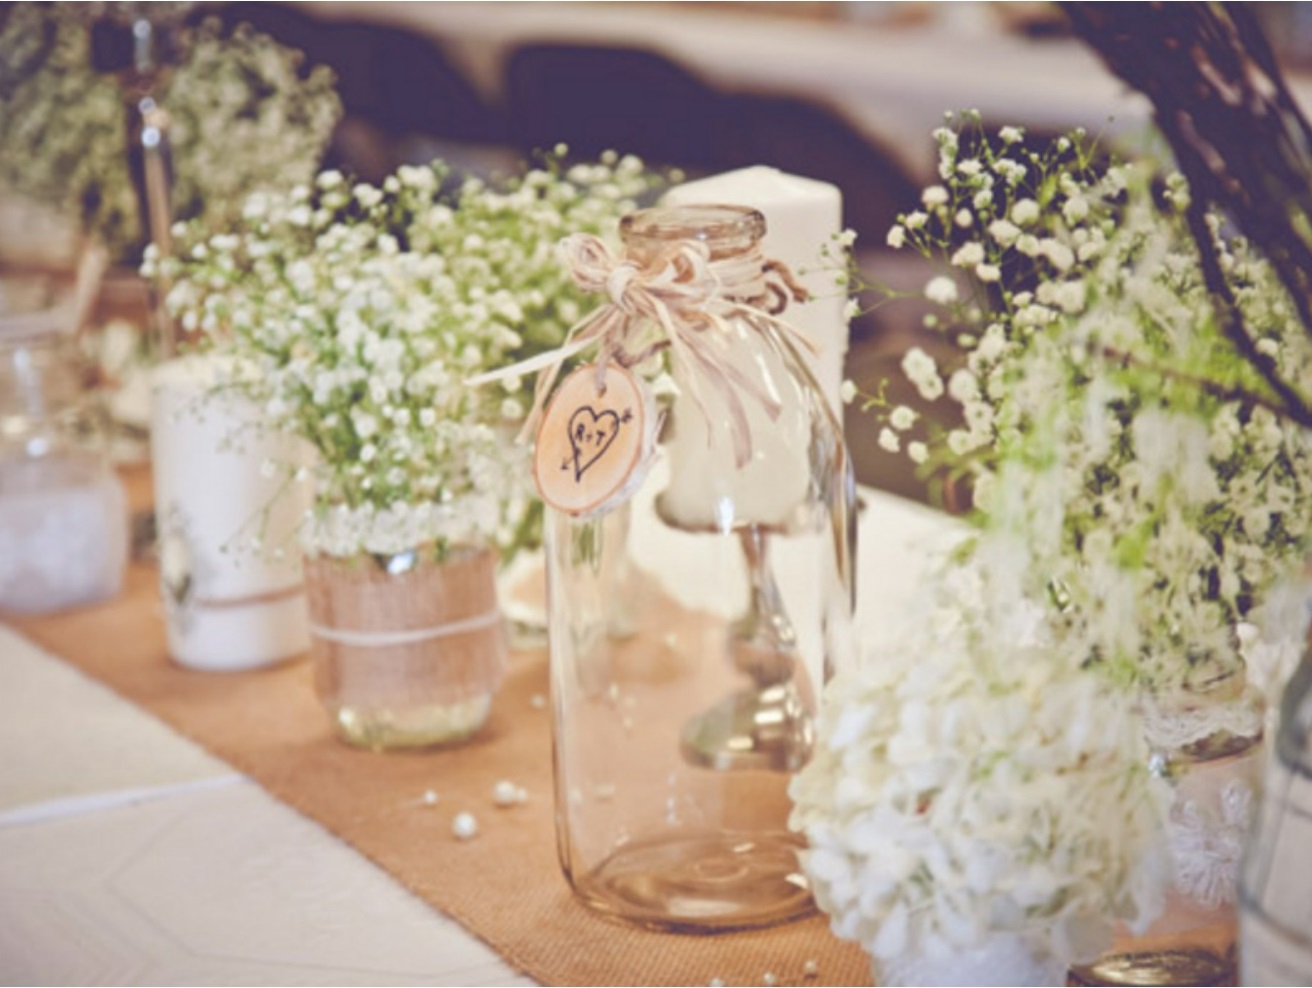 Using hessian burlap material at your wedding gems for Decor zippay